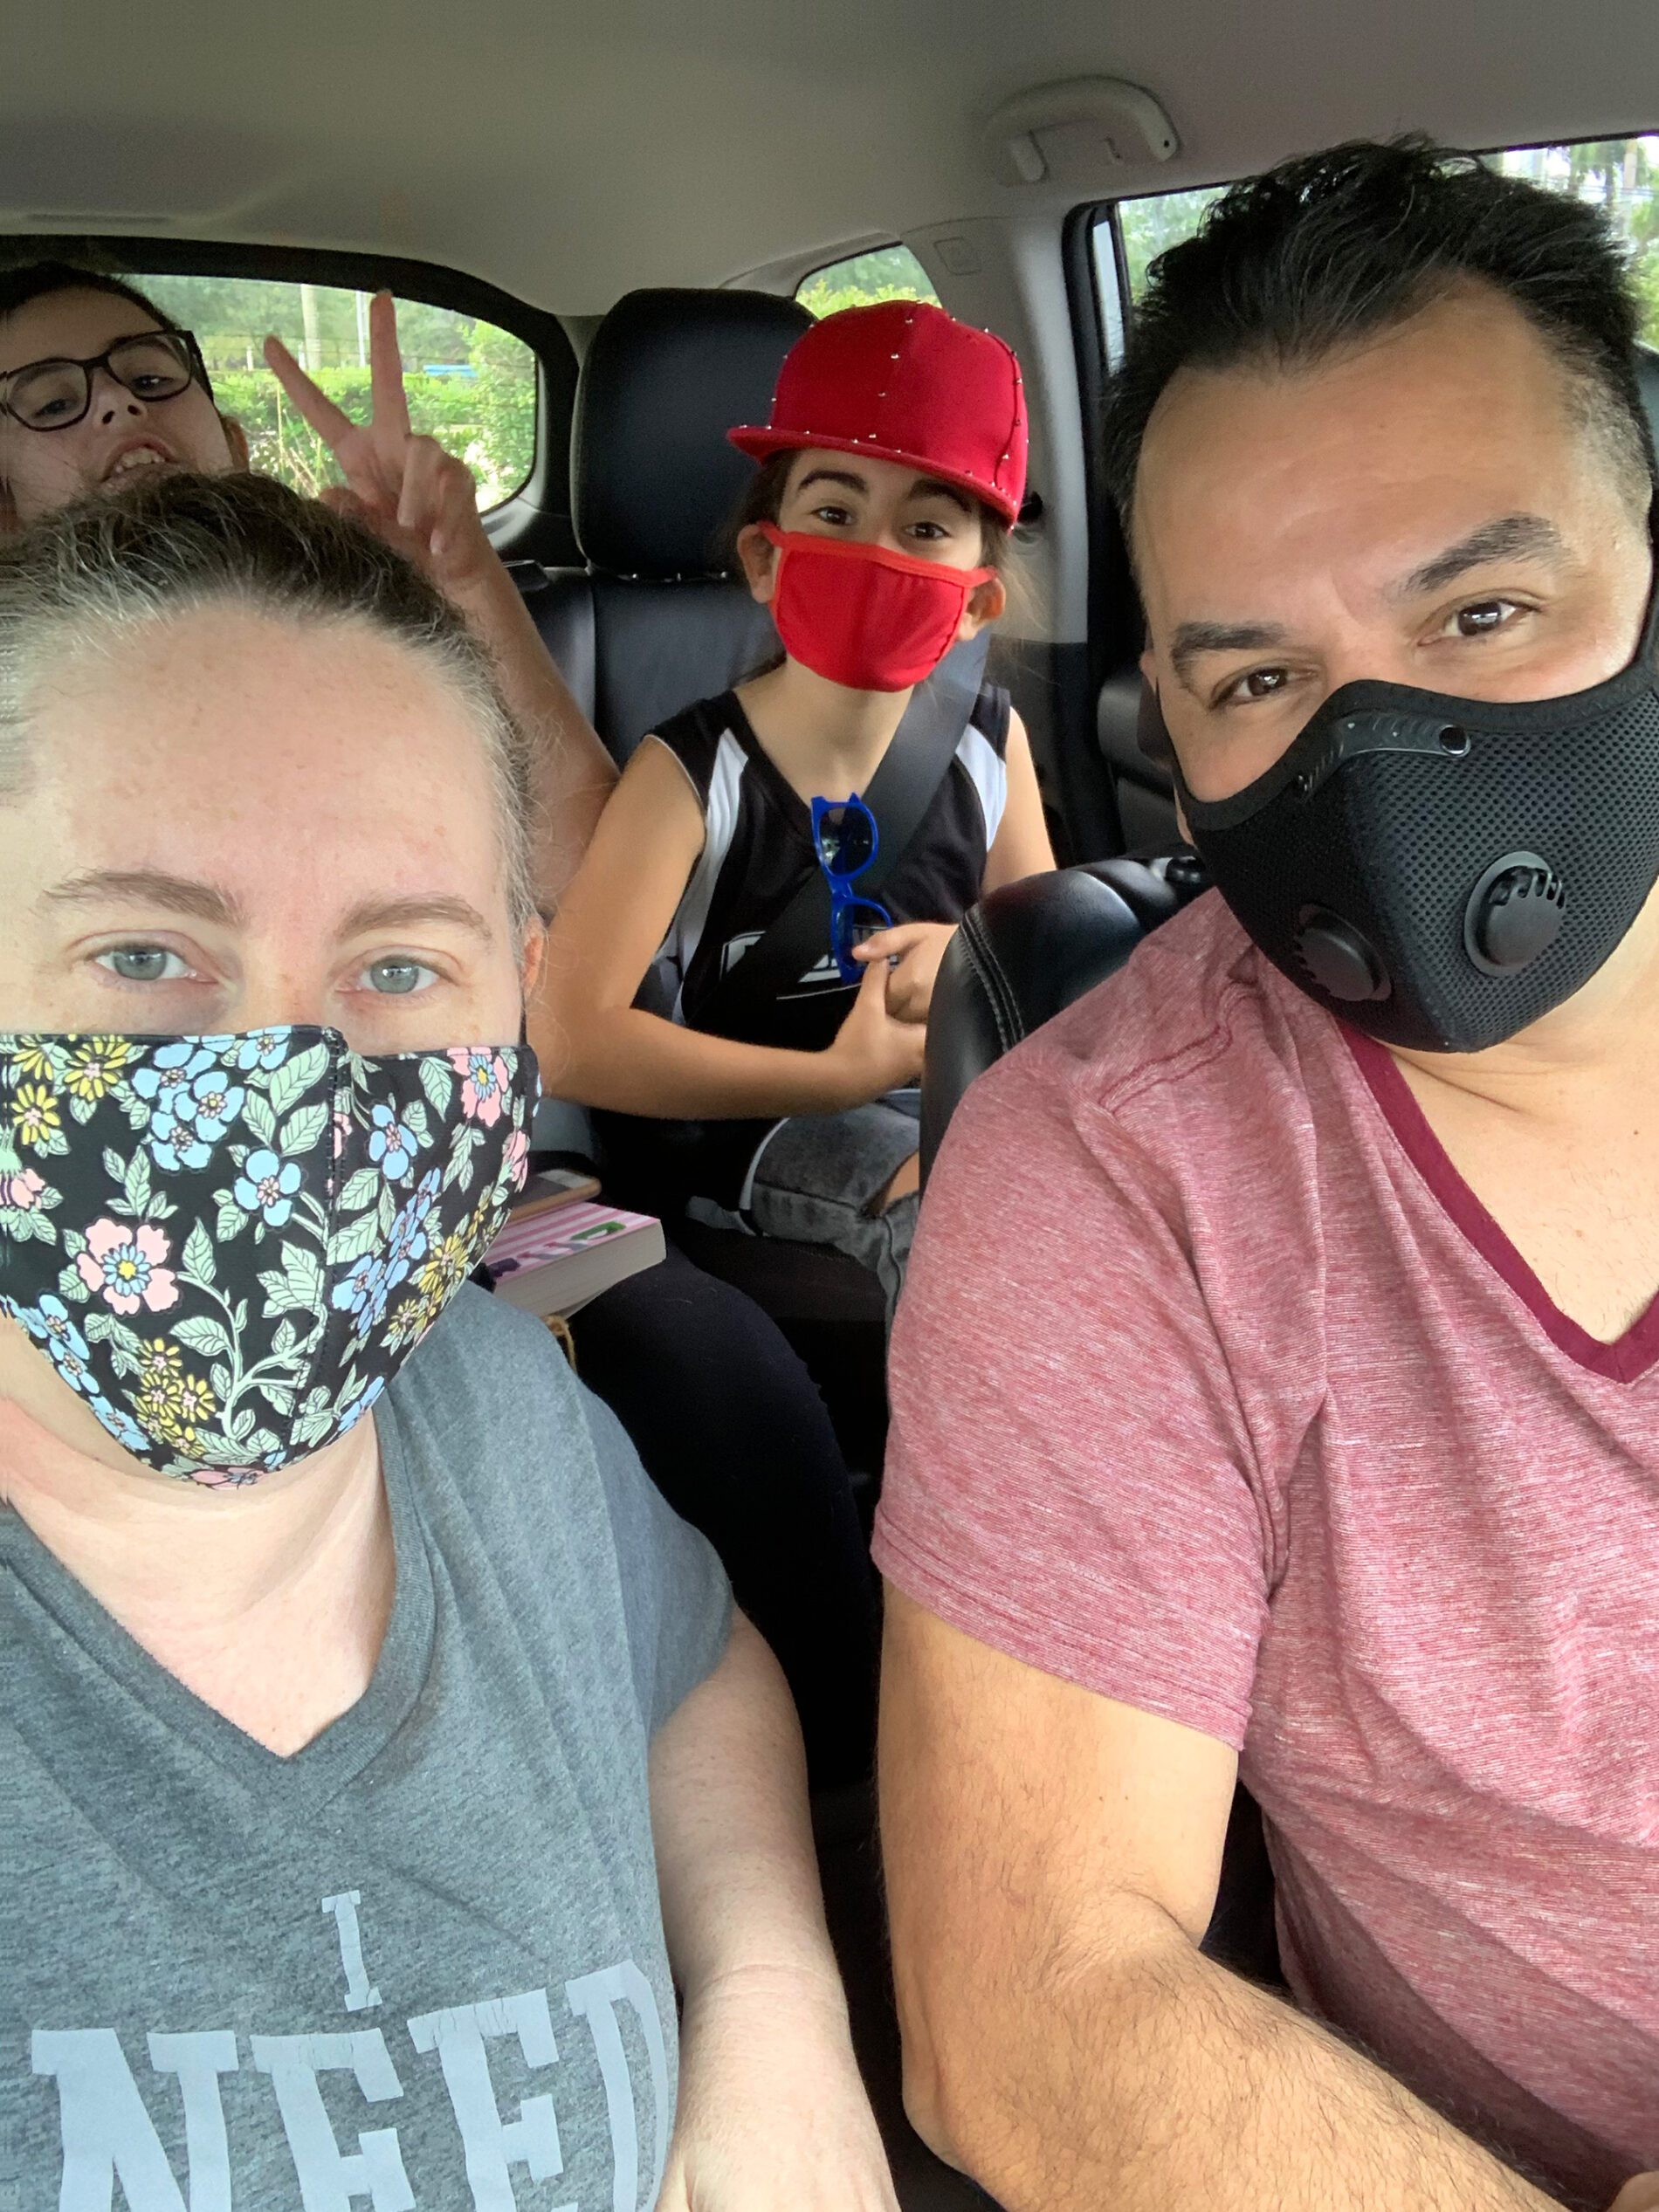 family in the car with masks on getting ready to get vaccinated